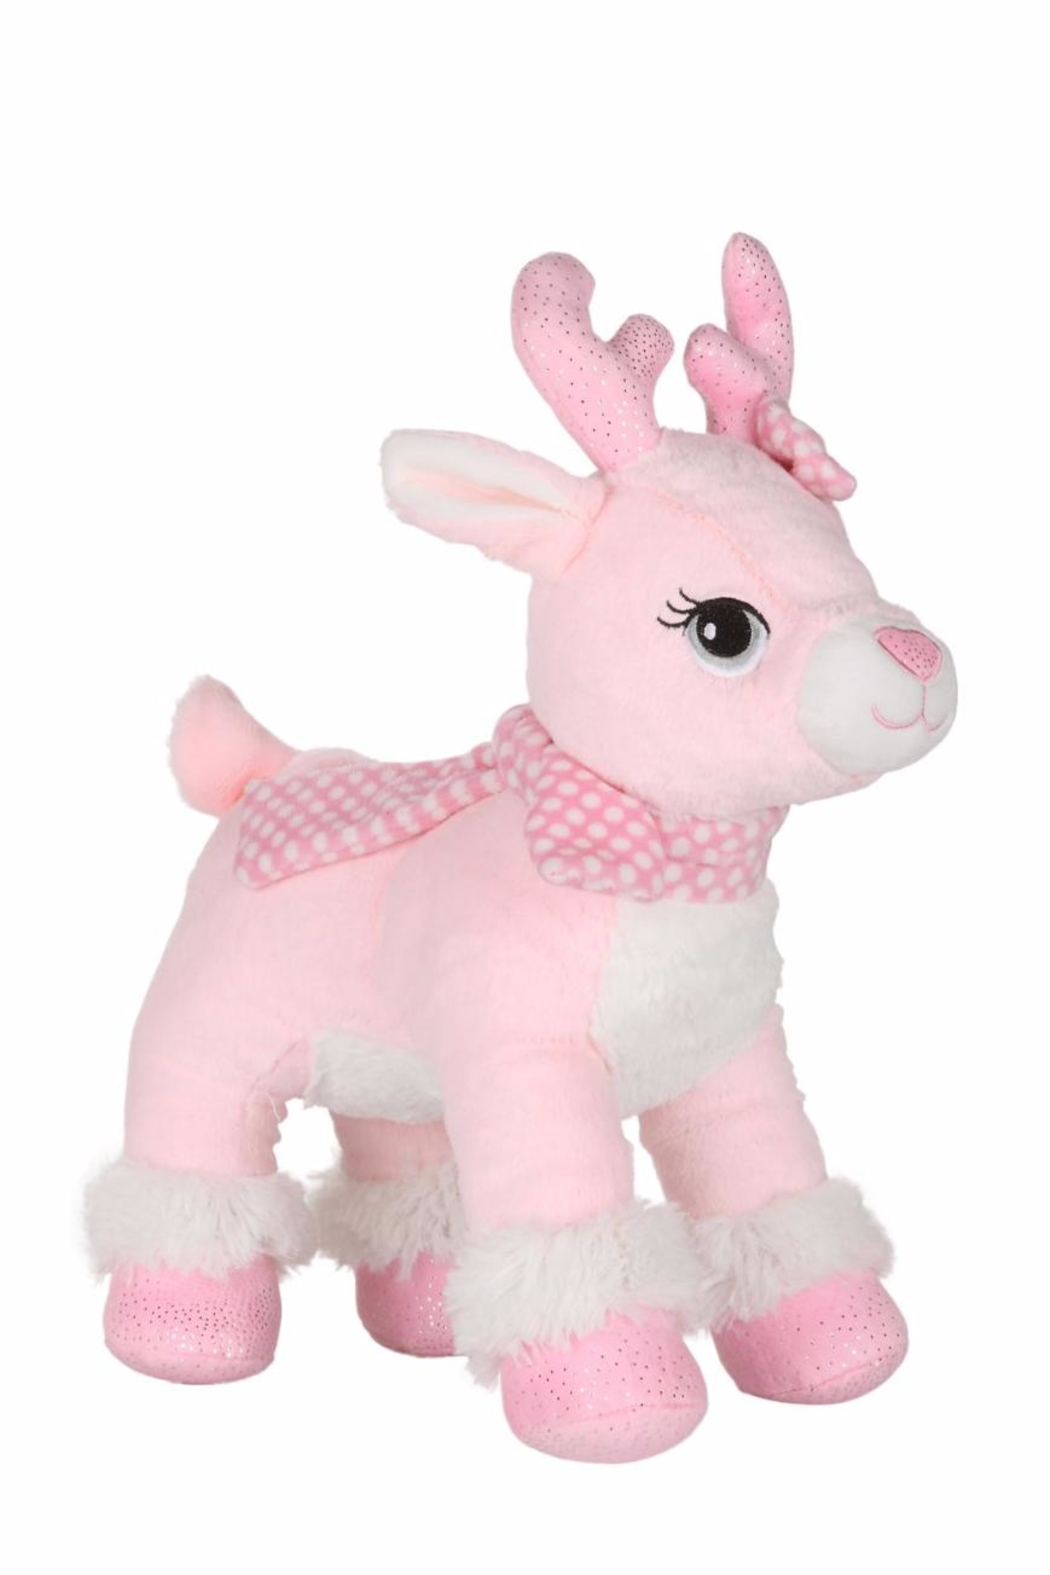 Cuddles and Friends Plush Pink Reindeer - Main Image